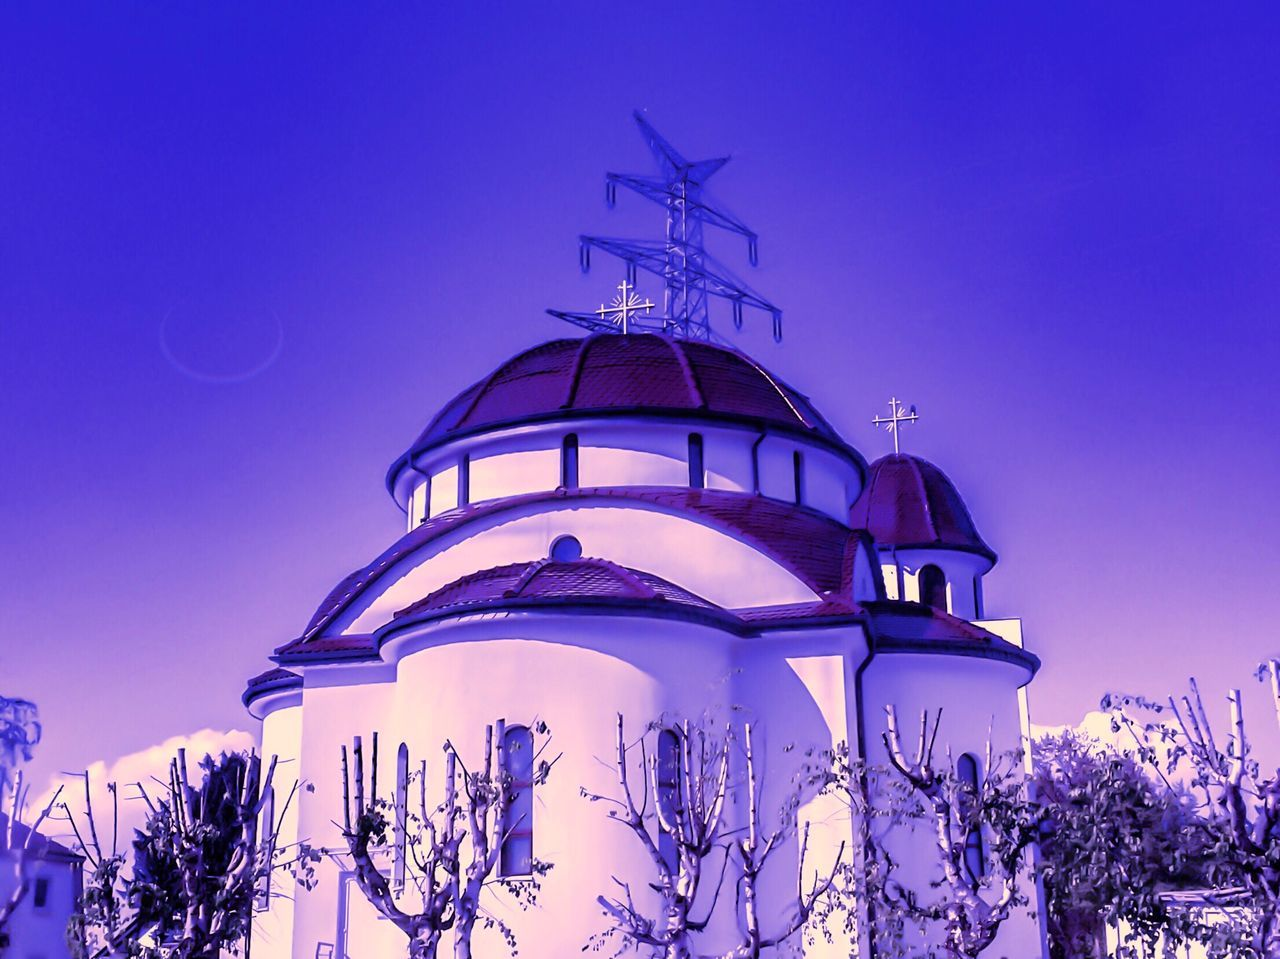 Architecture Low Angle View Built Structure Building Exterior Blue Clear Sky No People Outdoors Dome Nature Sky Day Church Oldchurch Reflection Colorful Creativity Creative Photography Nice Atmosphere Nice View Moon Background Backgrounds